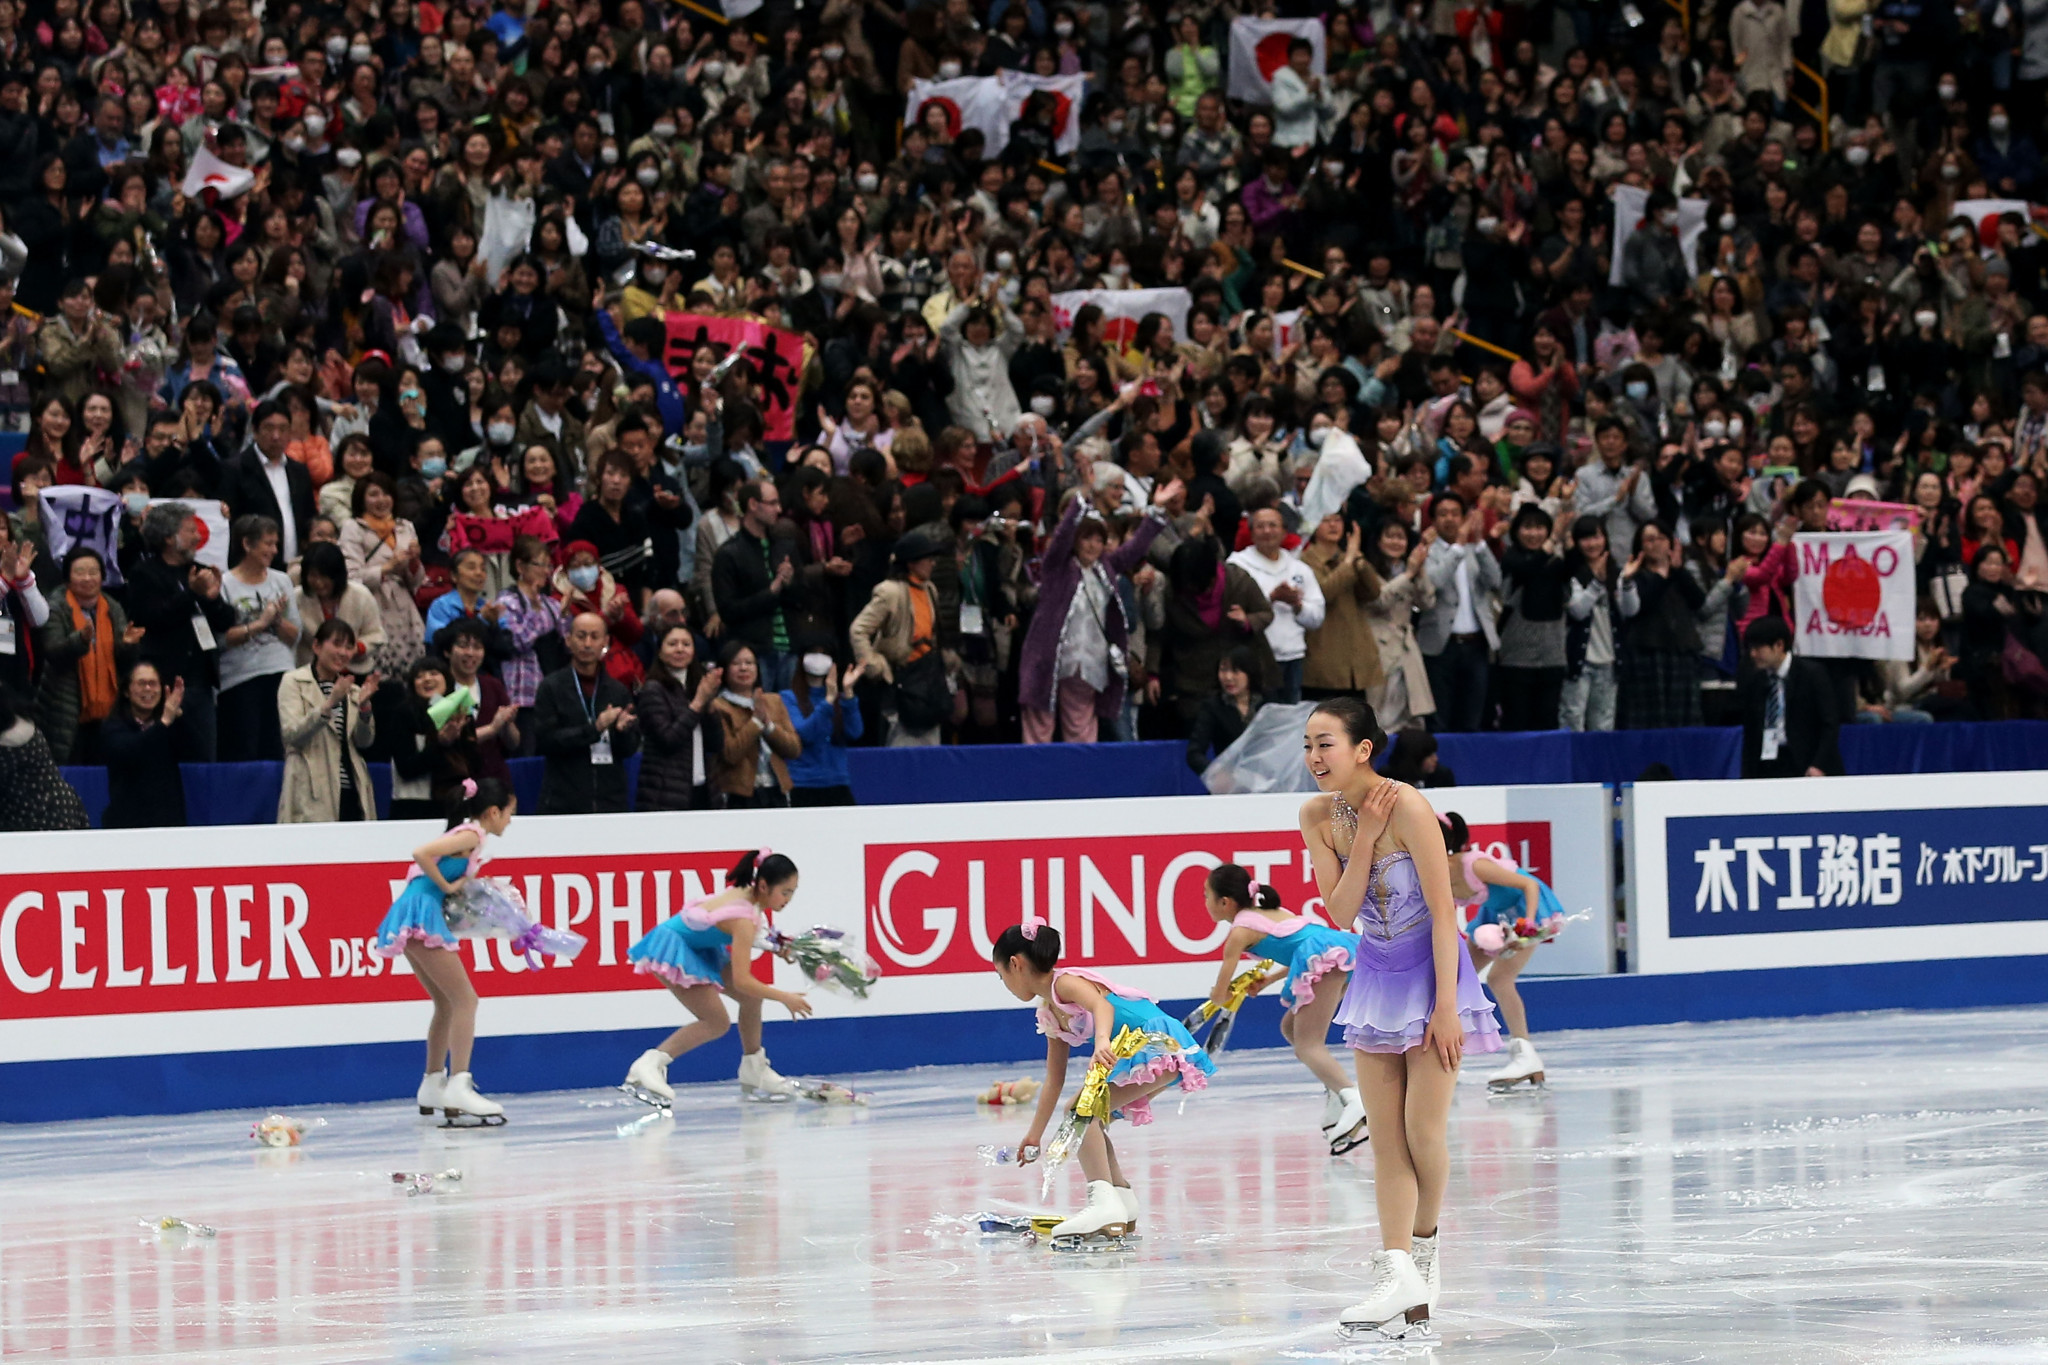 Saitama bidding to host World Figure Skating Championships for third time in 10 years